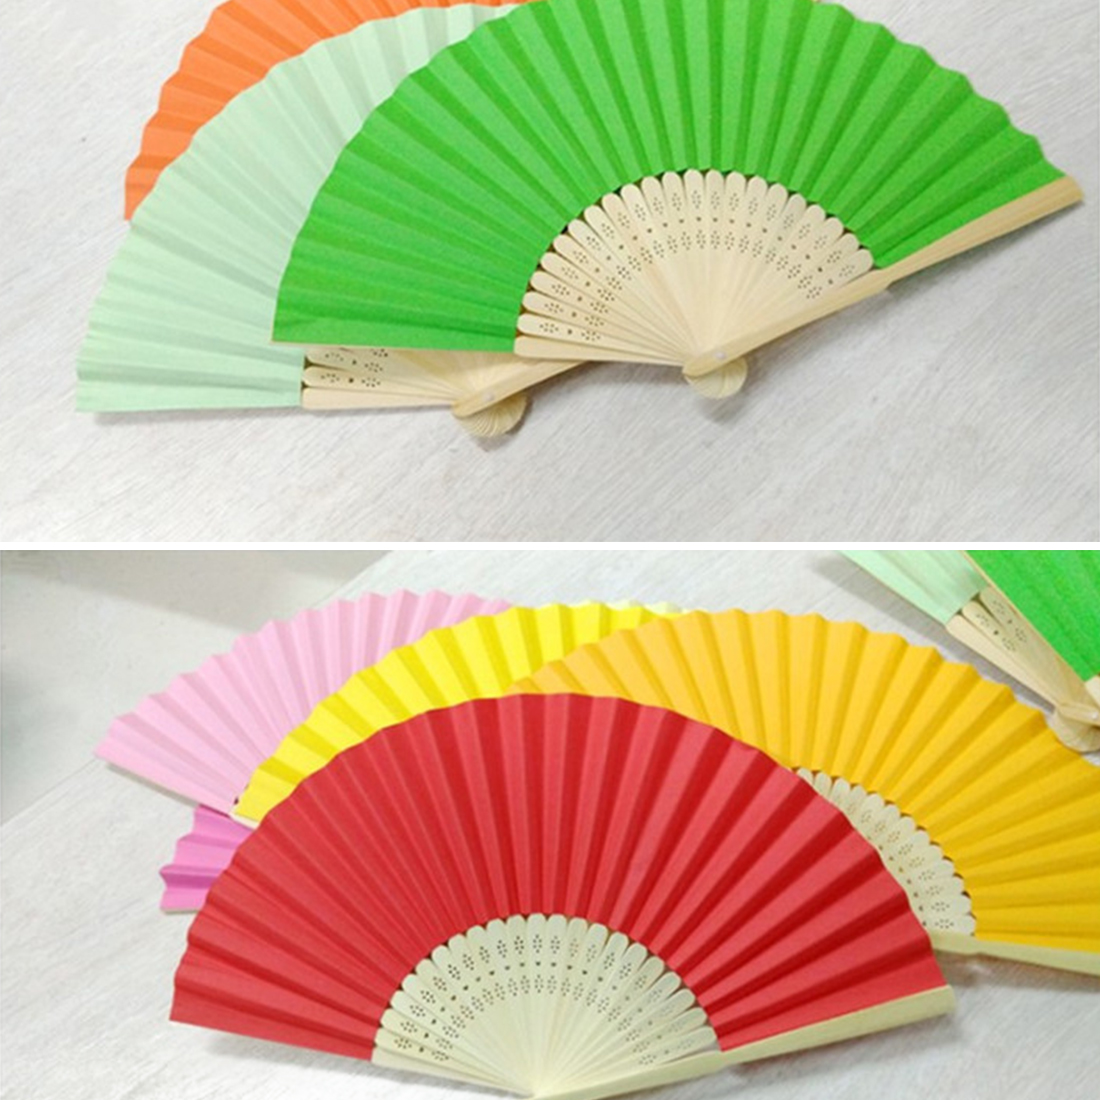 Ideal Handbag Accessory for Hot Weather BNWT Hand Made Paper /& Bamboo Fan